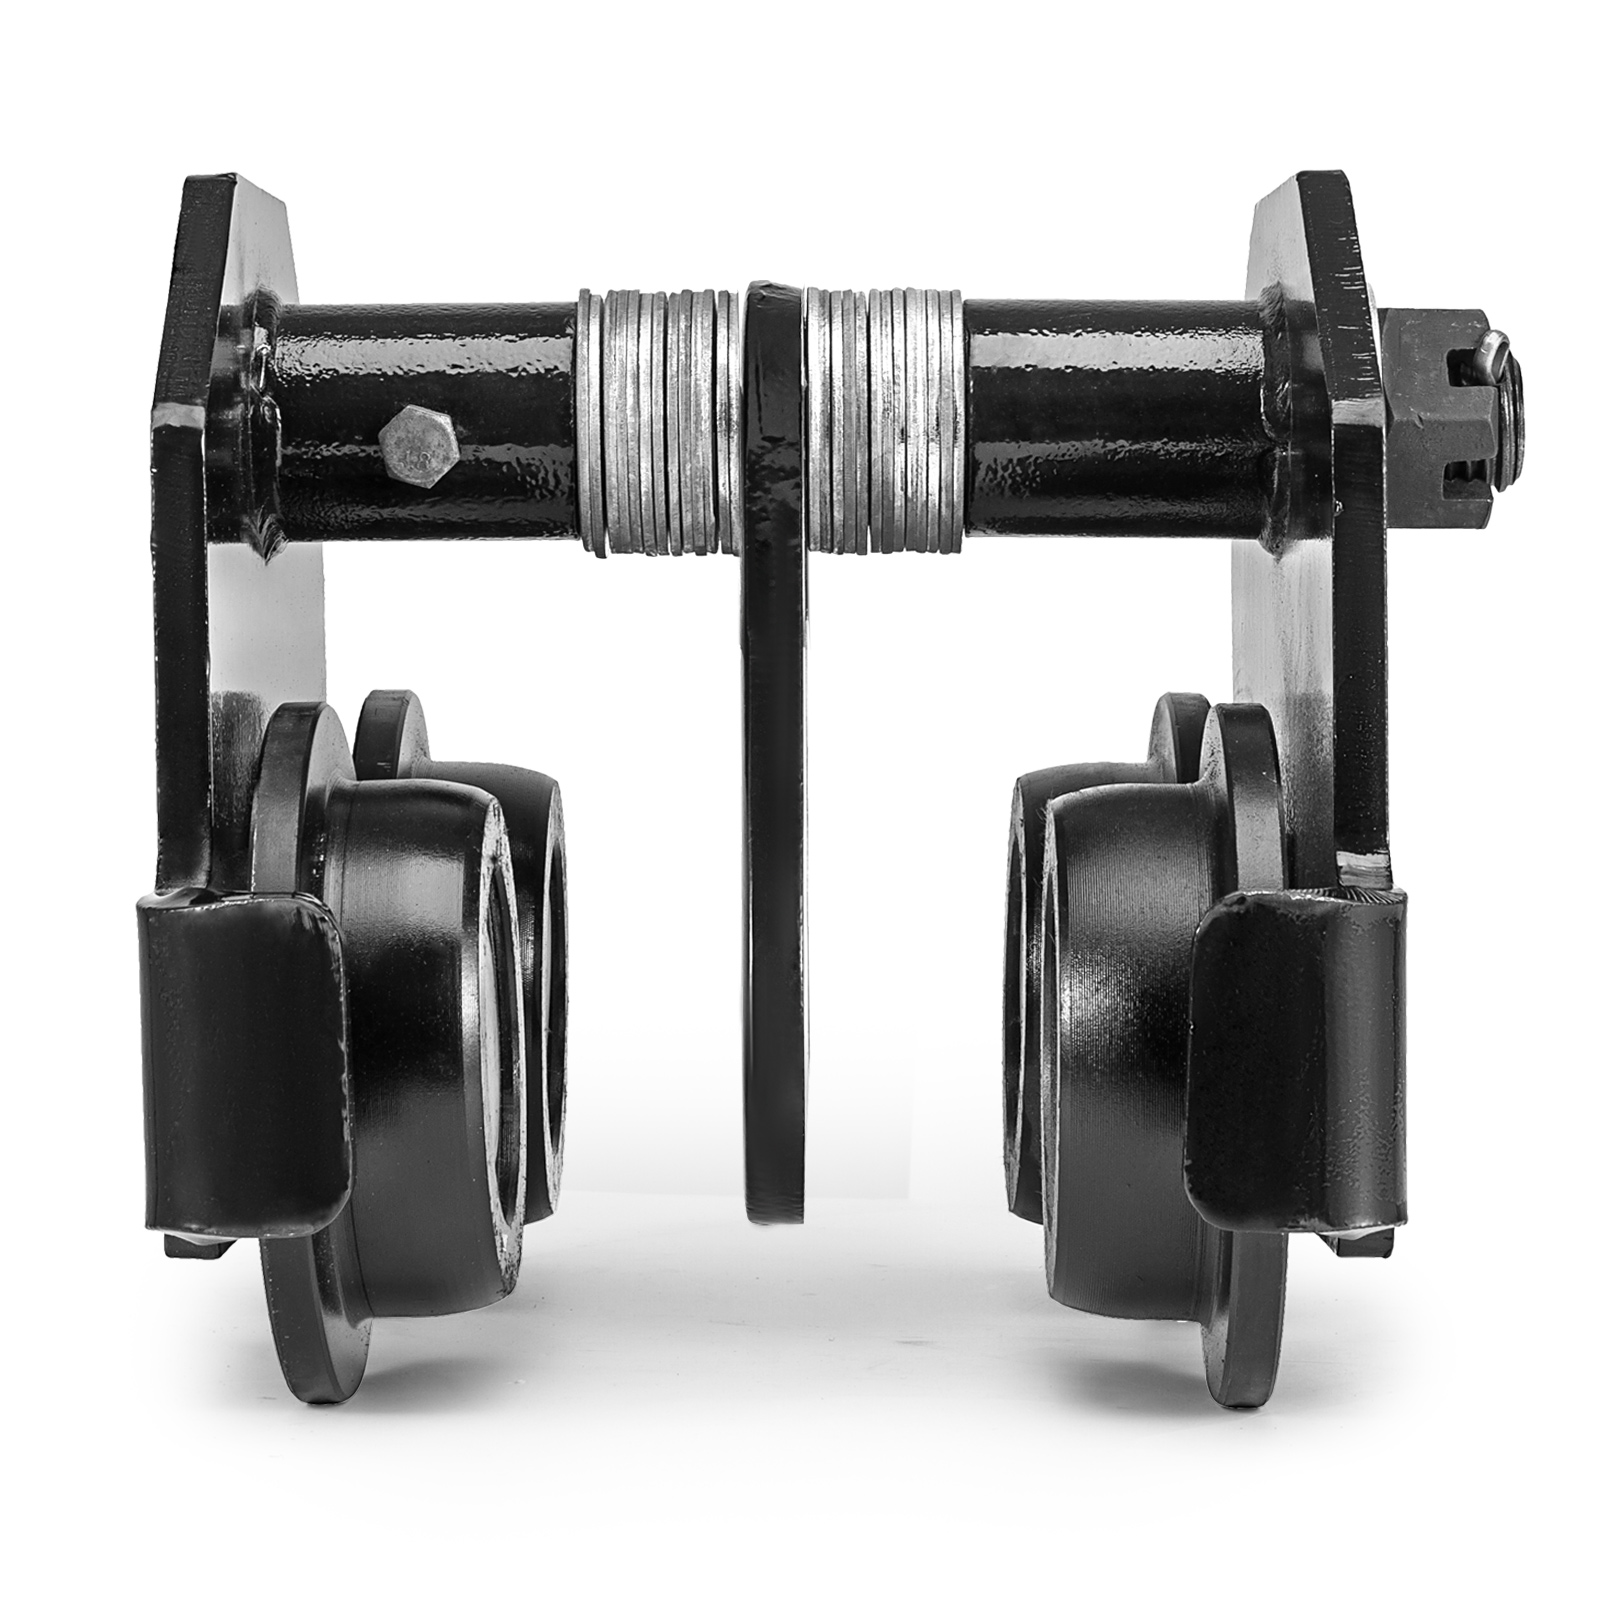 0-5T-2T-3T-Ton-Push-Beam-Trolley-For-Heavy-Loads-To-6600-Lb-Fits-Straight-I-Beam miniature 76